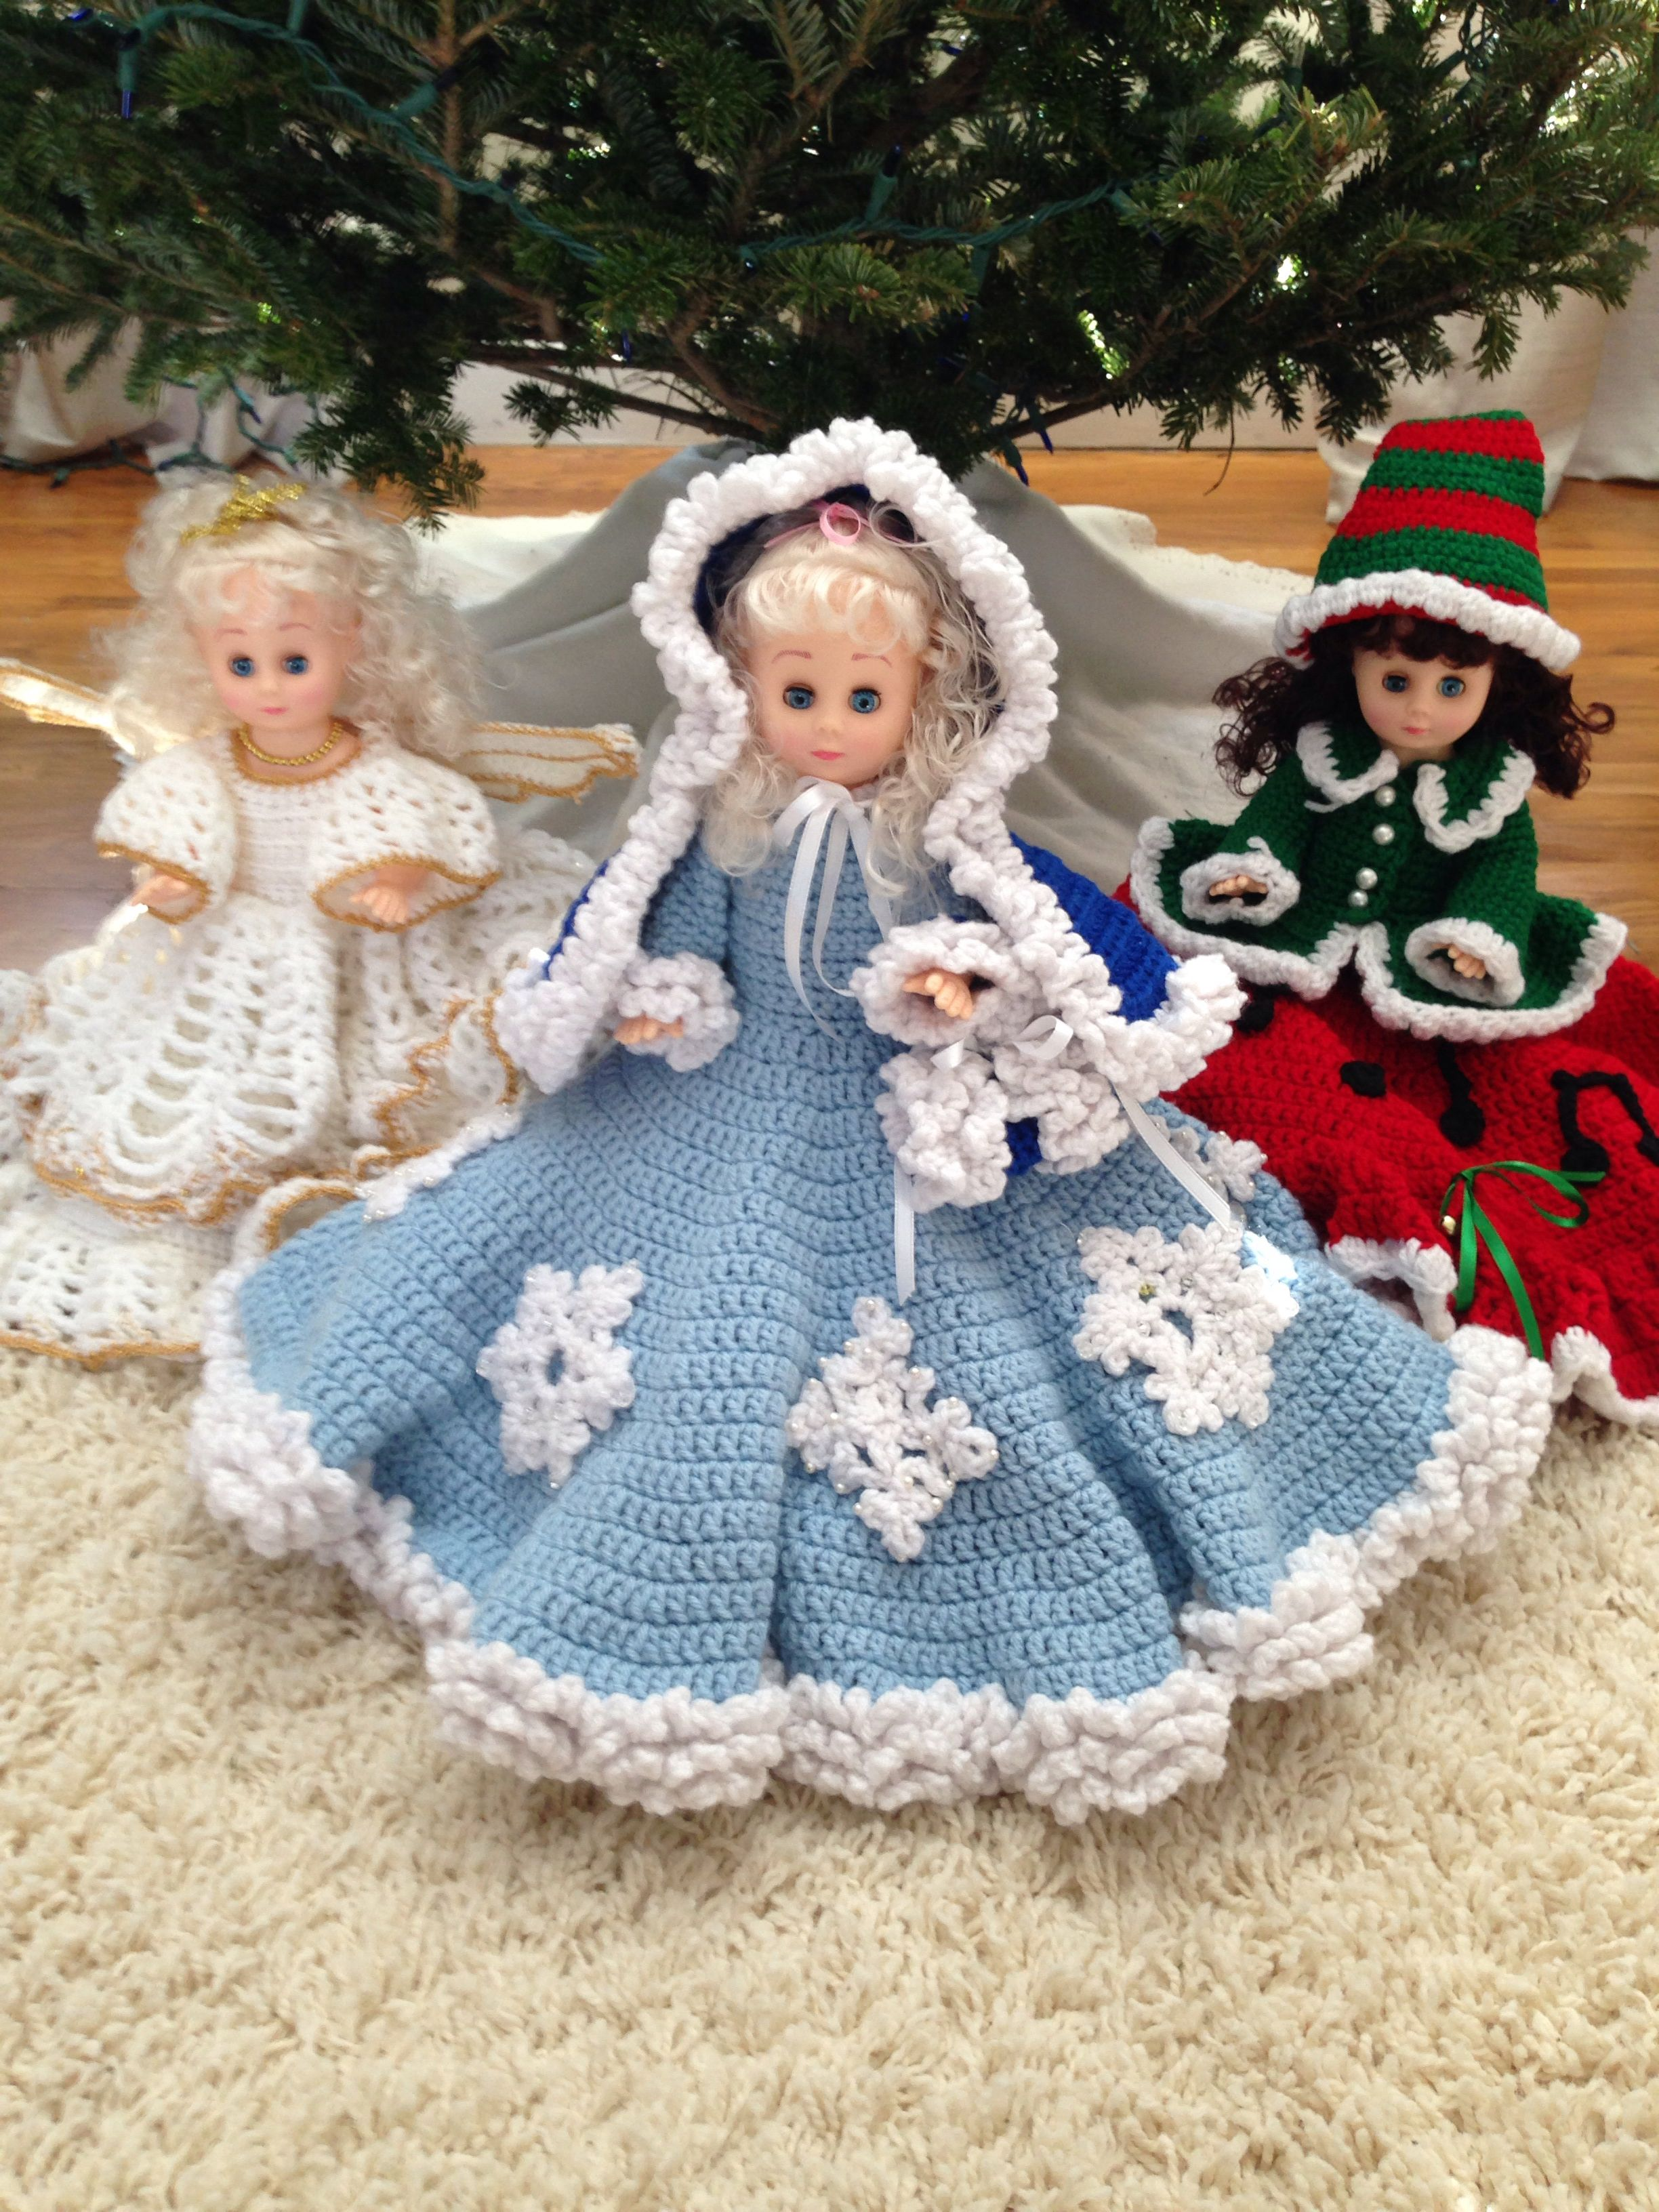 Crochet bed dolls. Patterns from the 80's I think!! #airfreshnerdolls